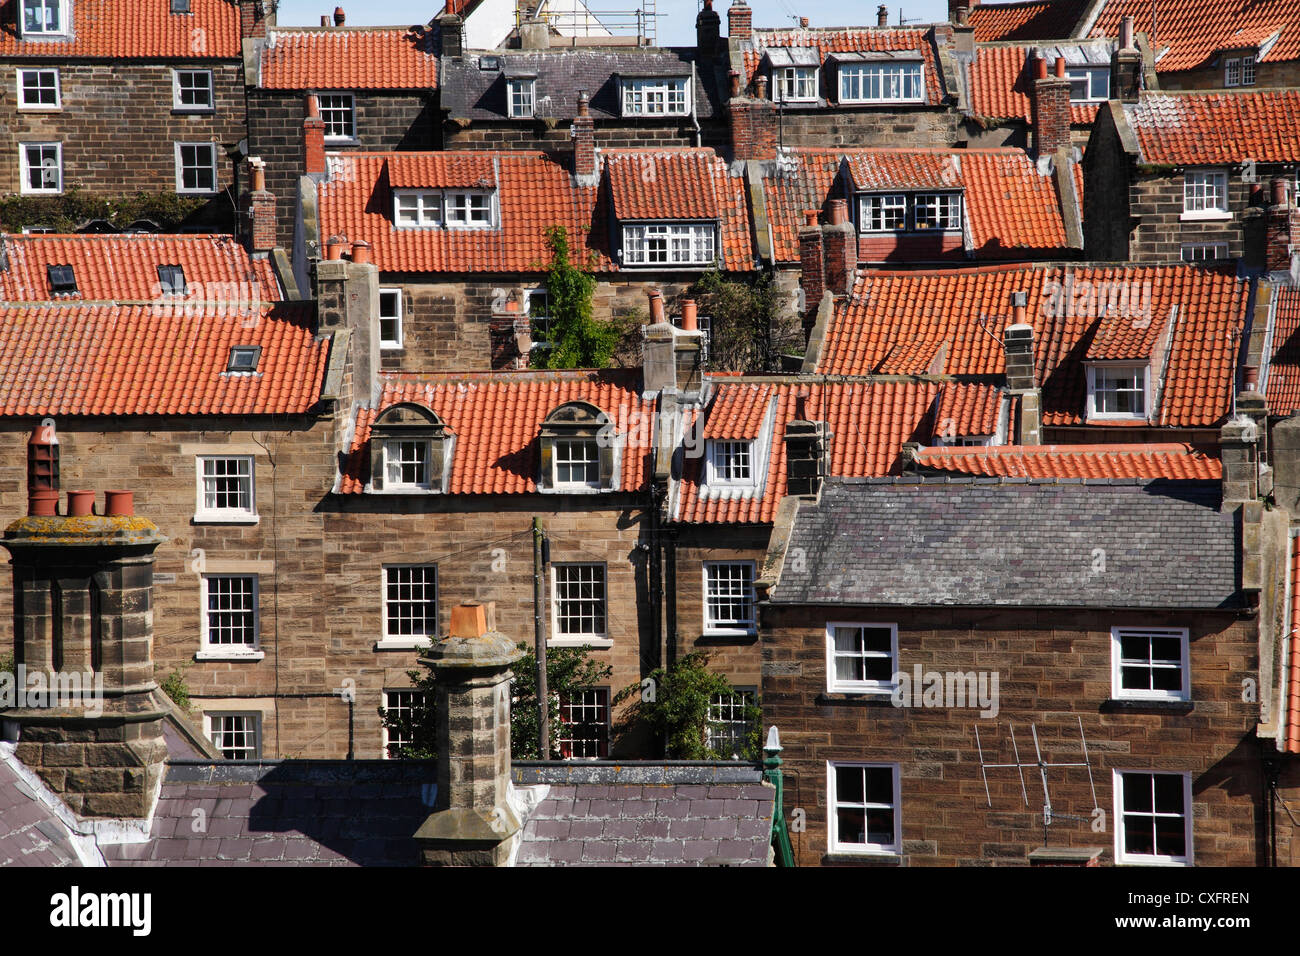 Tiled rooftops of houses in North Yorkshire, England, U.K. - Stock Image